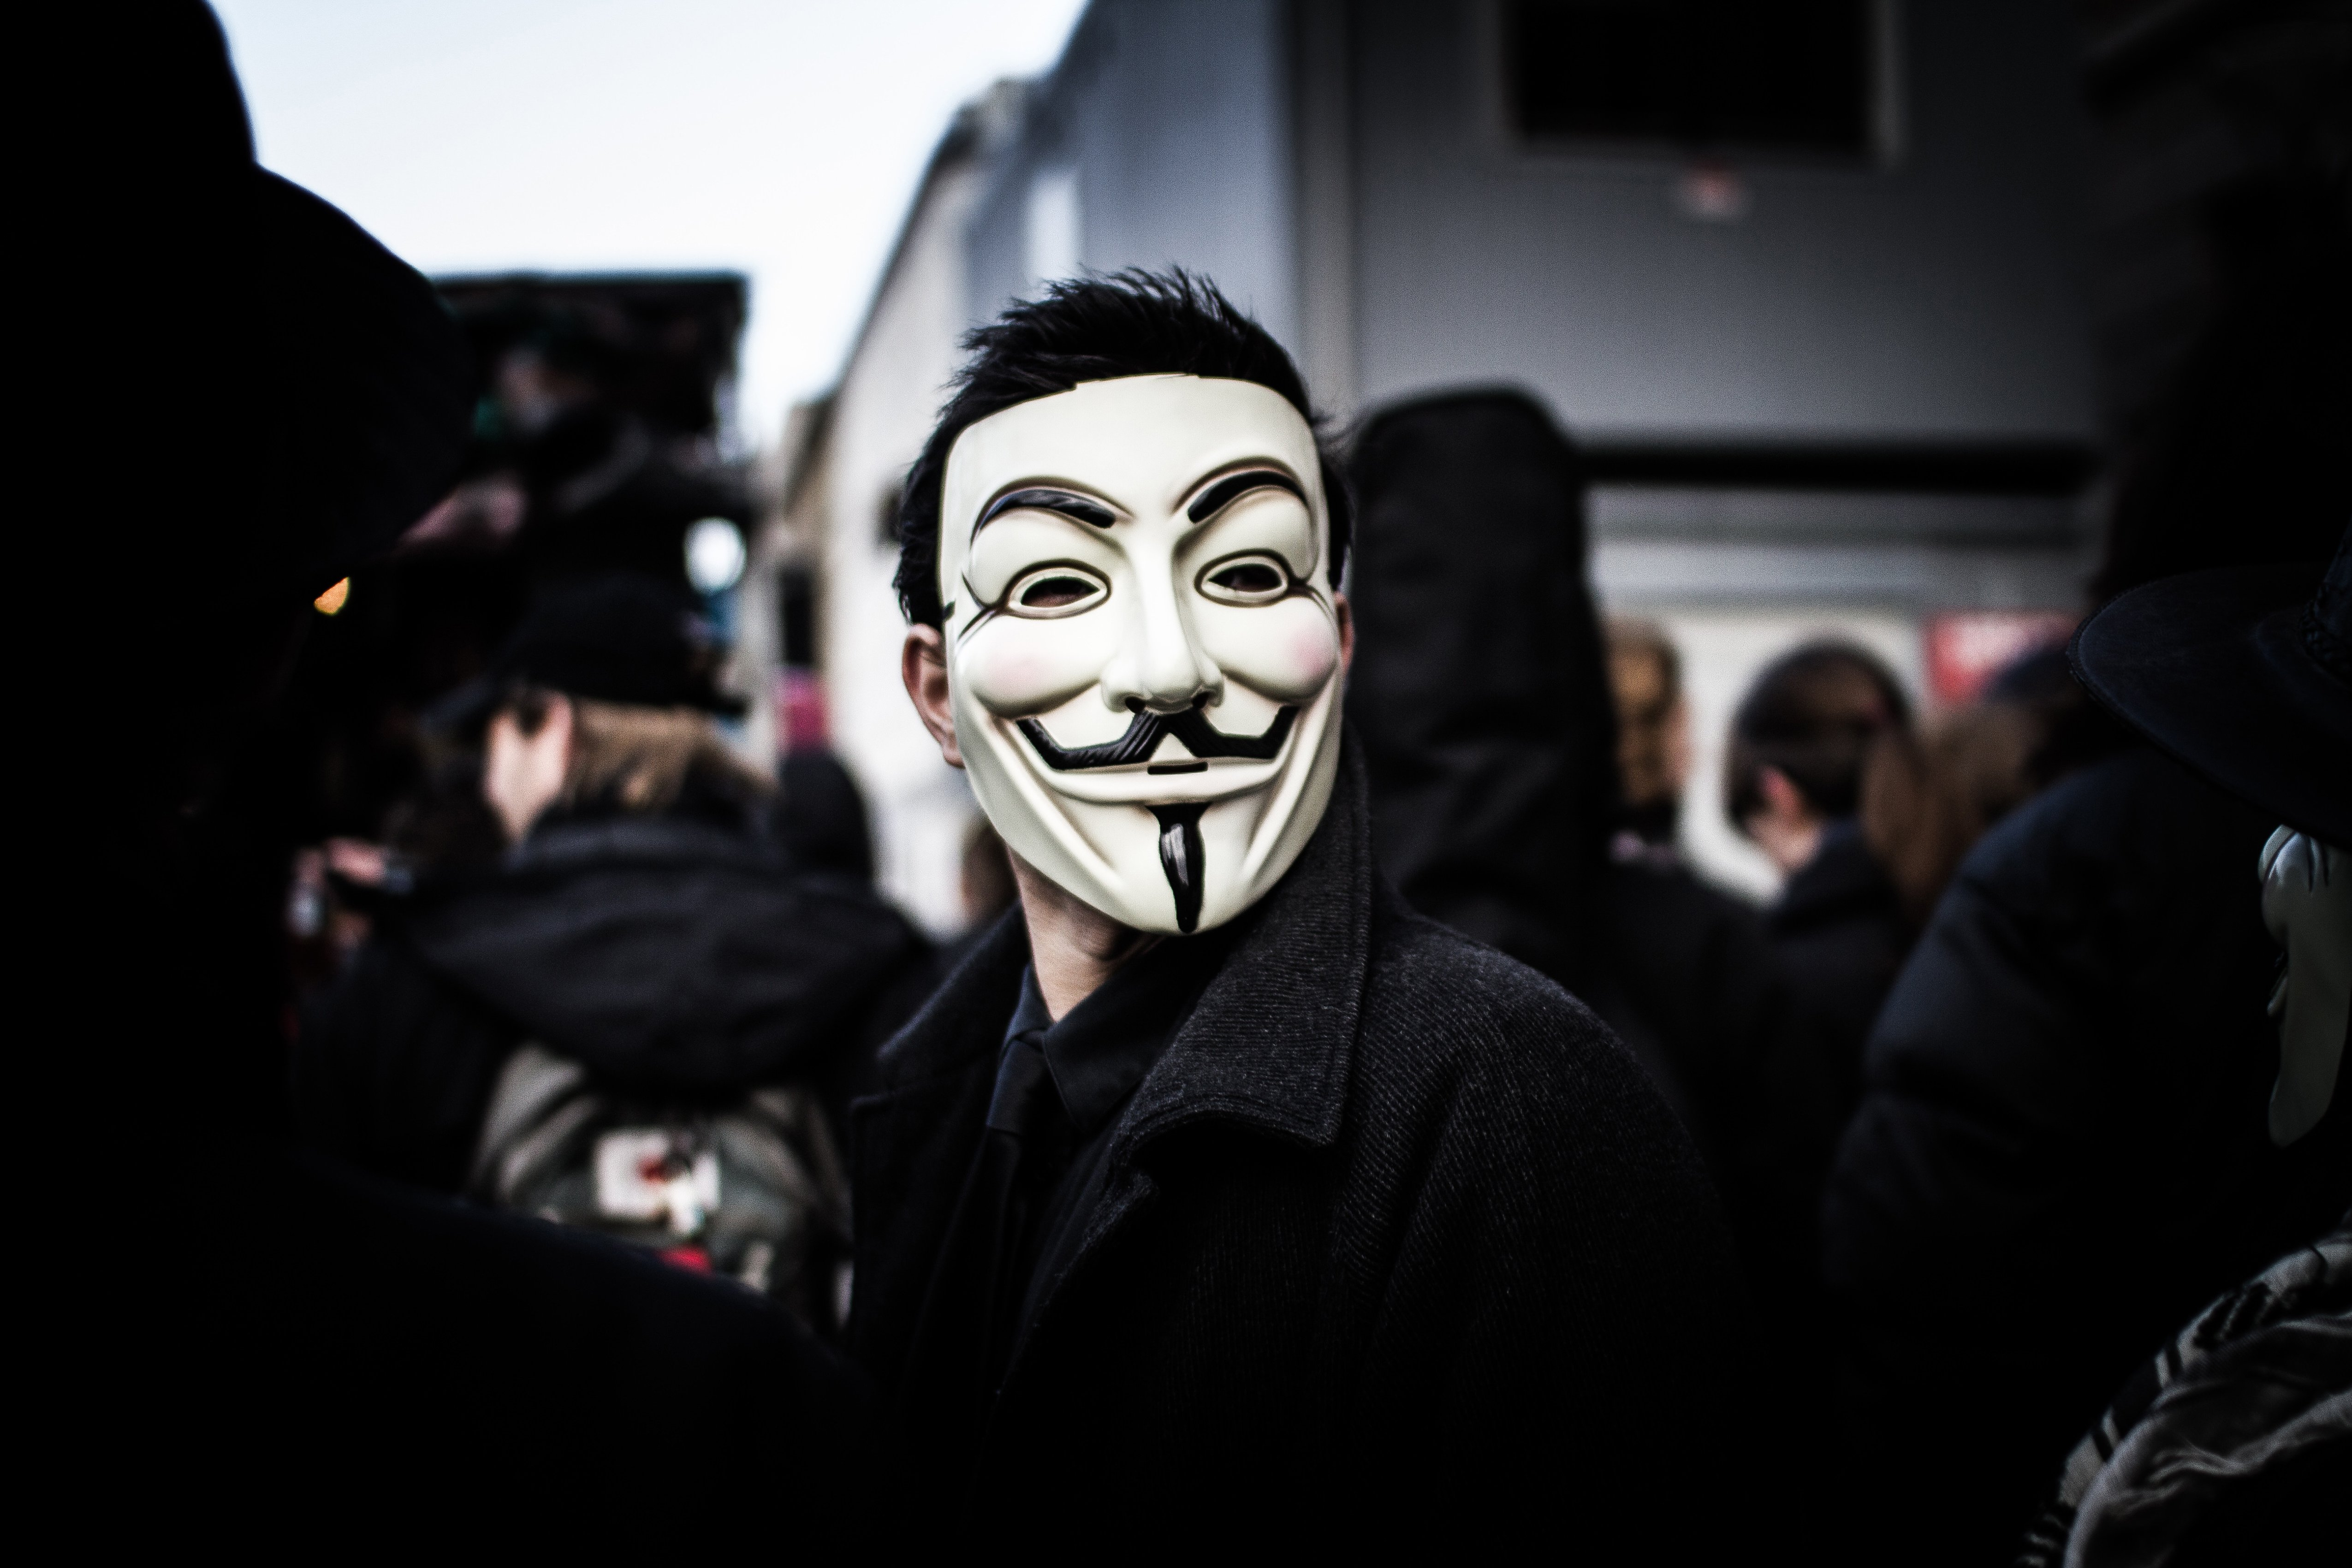 Person wears a Guy Fawkes mask which today is a trademark and symbol for the online hacktivist group Anonymous. 2012.